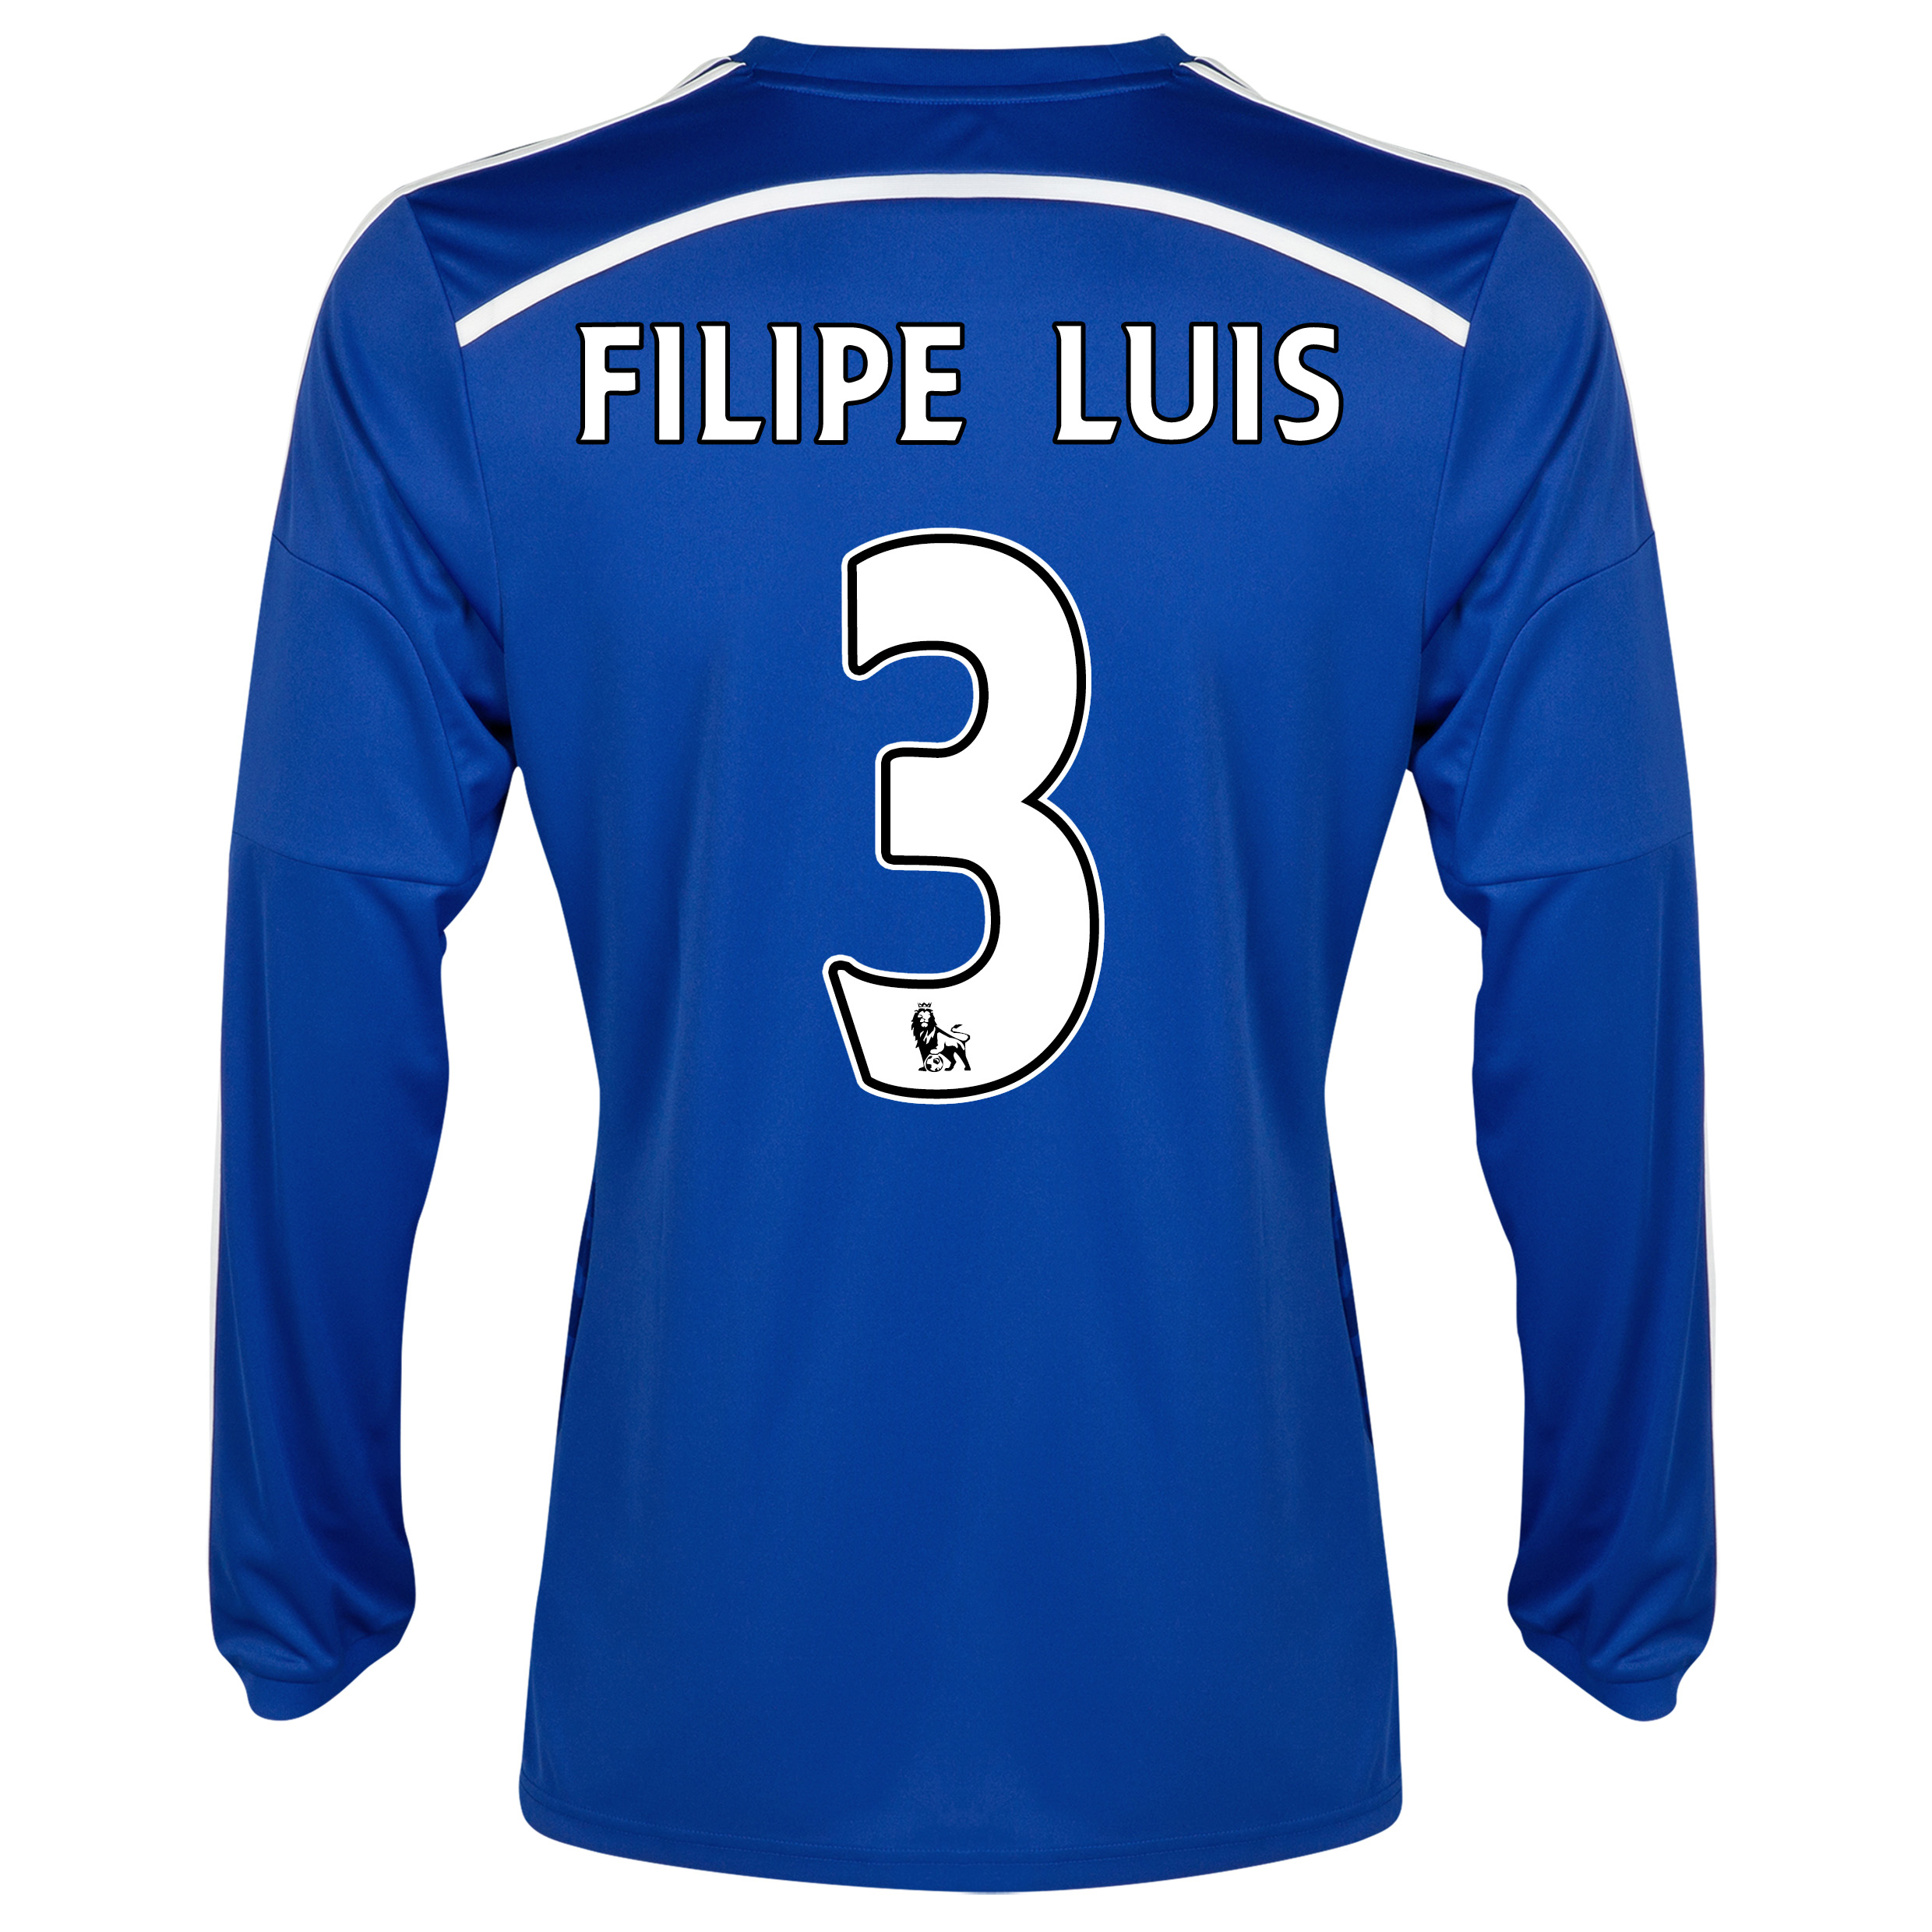 Chelsea Home Shirt 2014/15 - Long Sleeve with FILIPE LUIS 3 printing